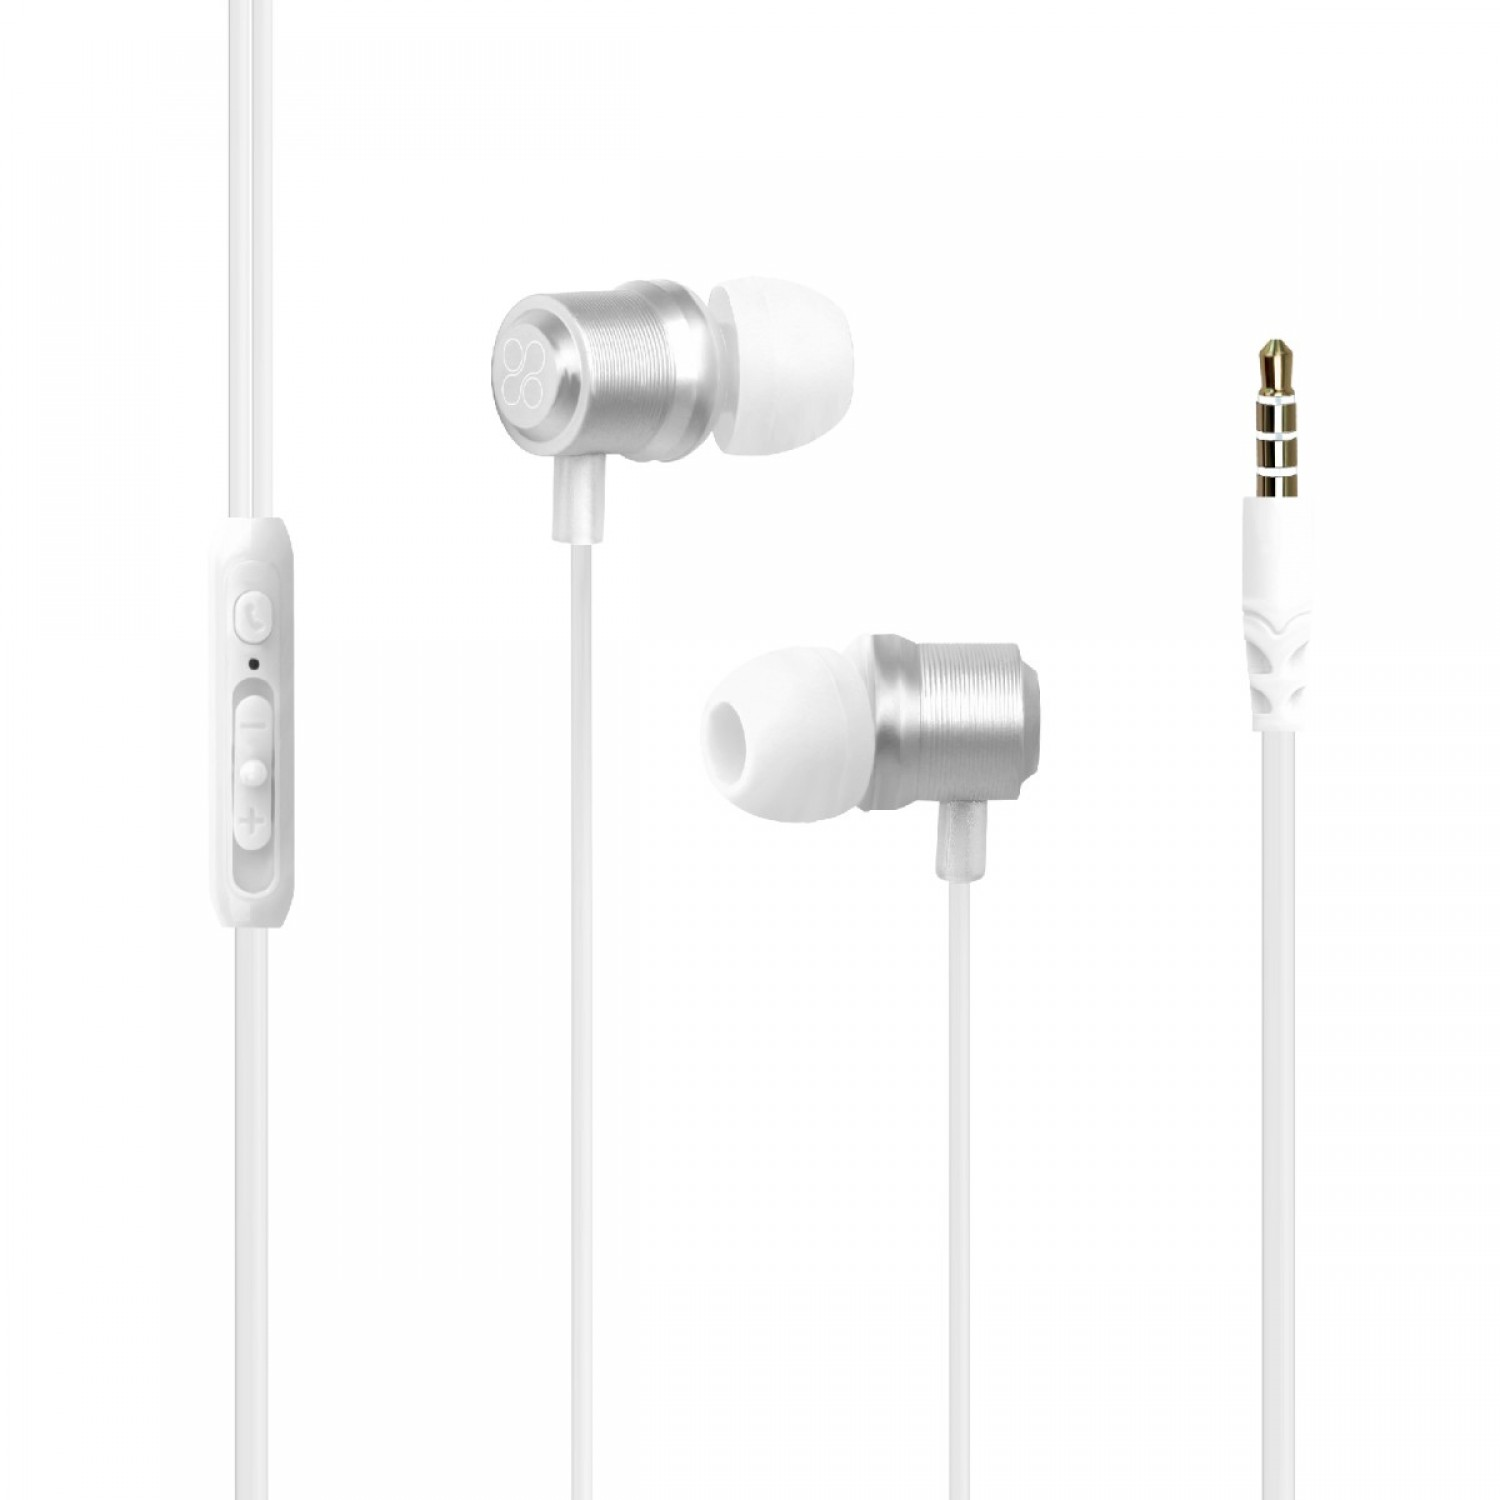 Promate Wired Earphone, Premium Magnetic Earbuds Stereo Headphones with Microphone, Built-In Volume Control, 1.2m Tangle Free Wire and Noise Cancelling for Smartphones, Tablets, Laptop, iPod, Travi White